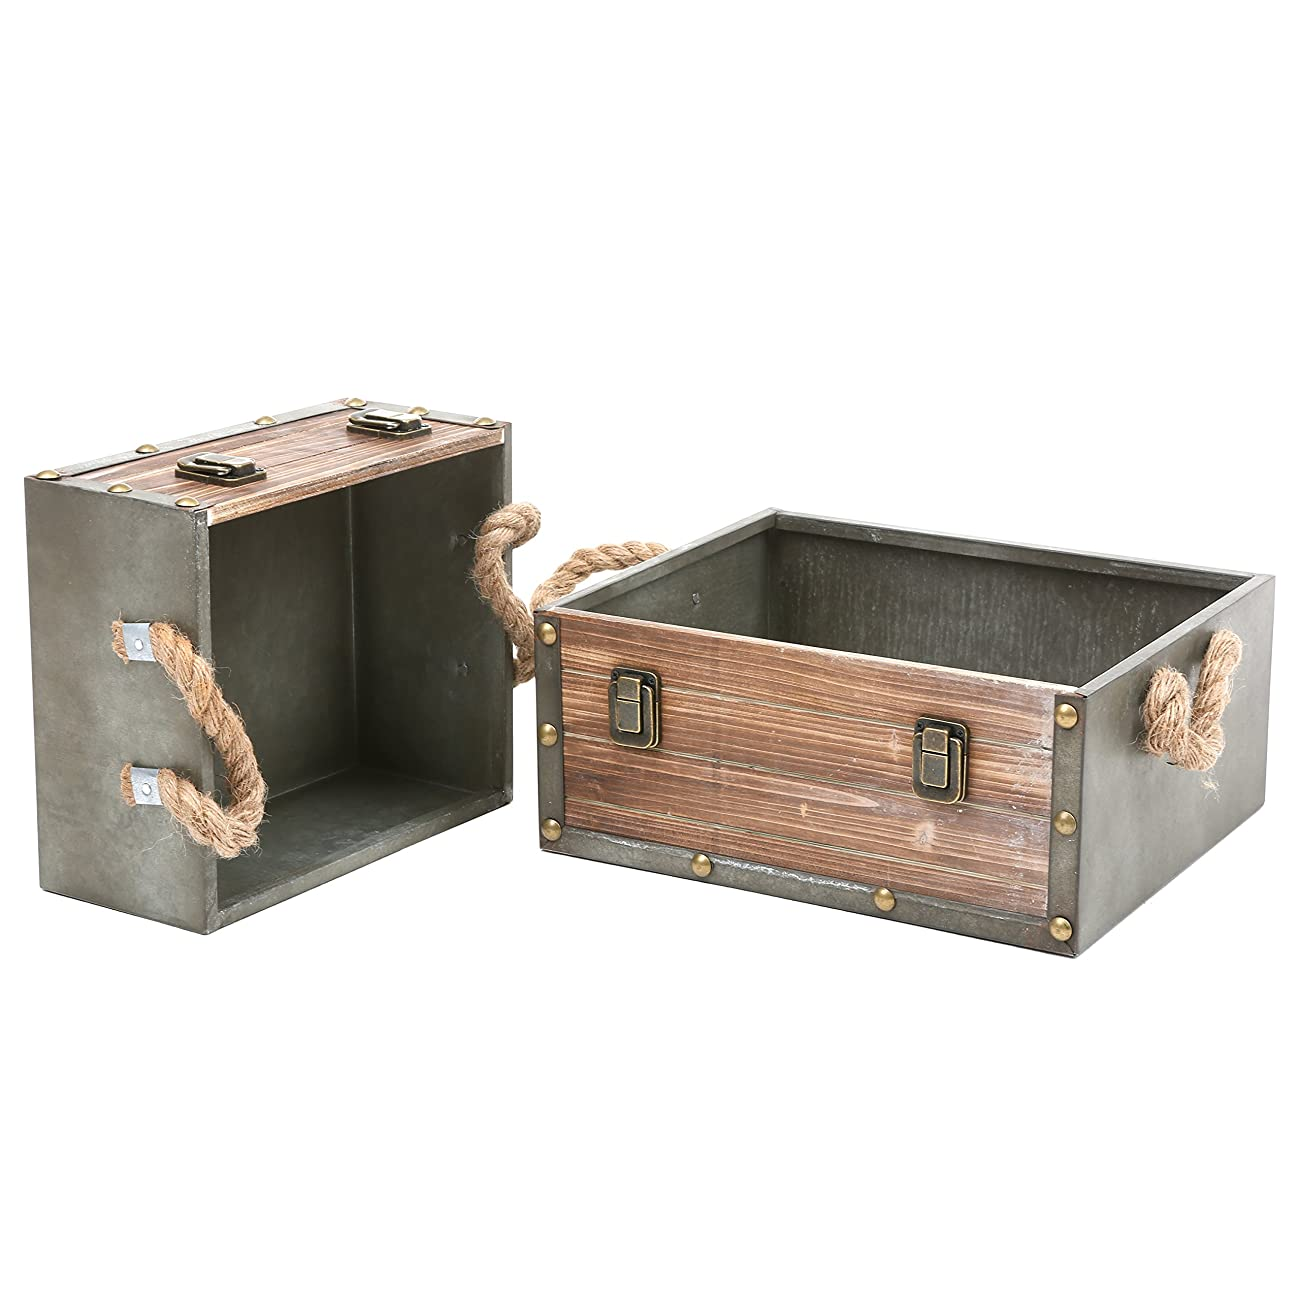 MyGift Set of 2 Wood Crates w/ Rope Handles, Rustic Nesting Storage Boxes, Brown 0